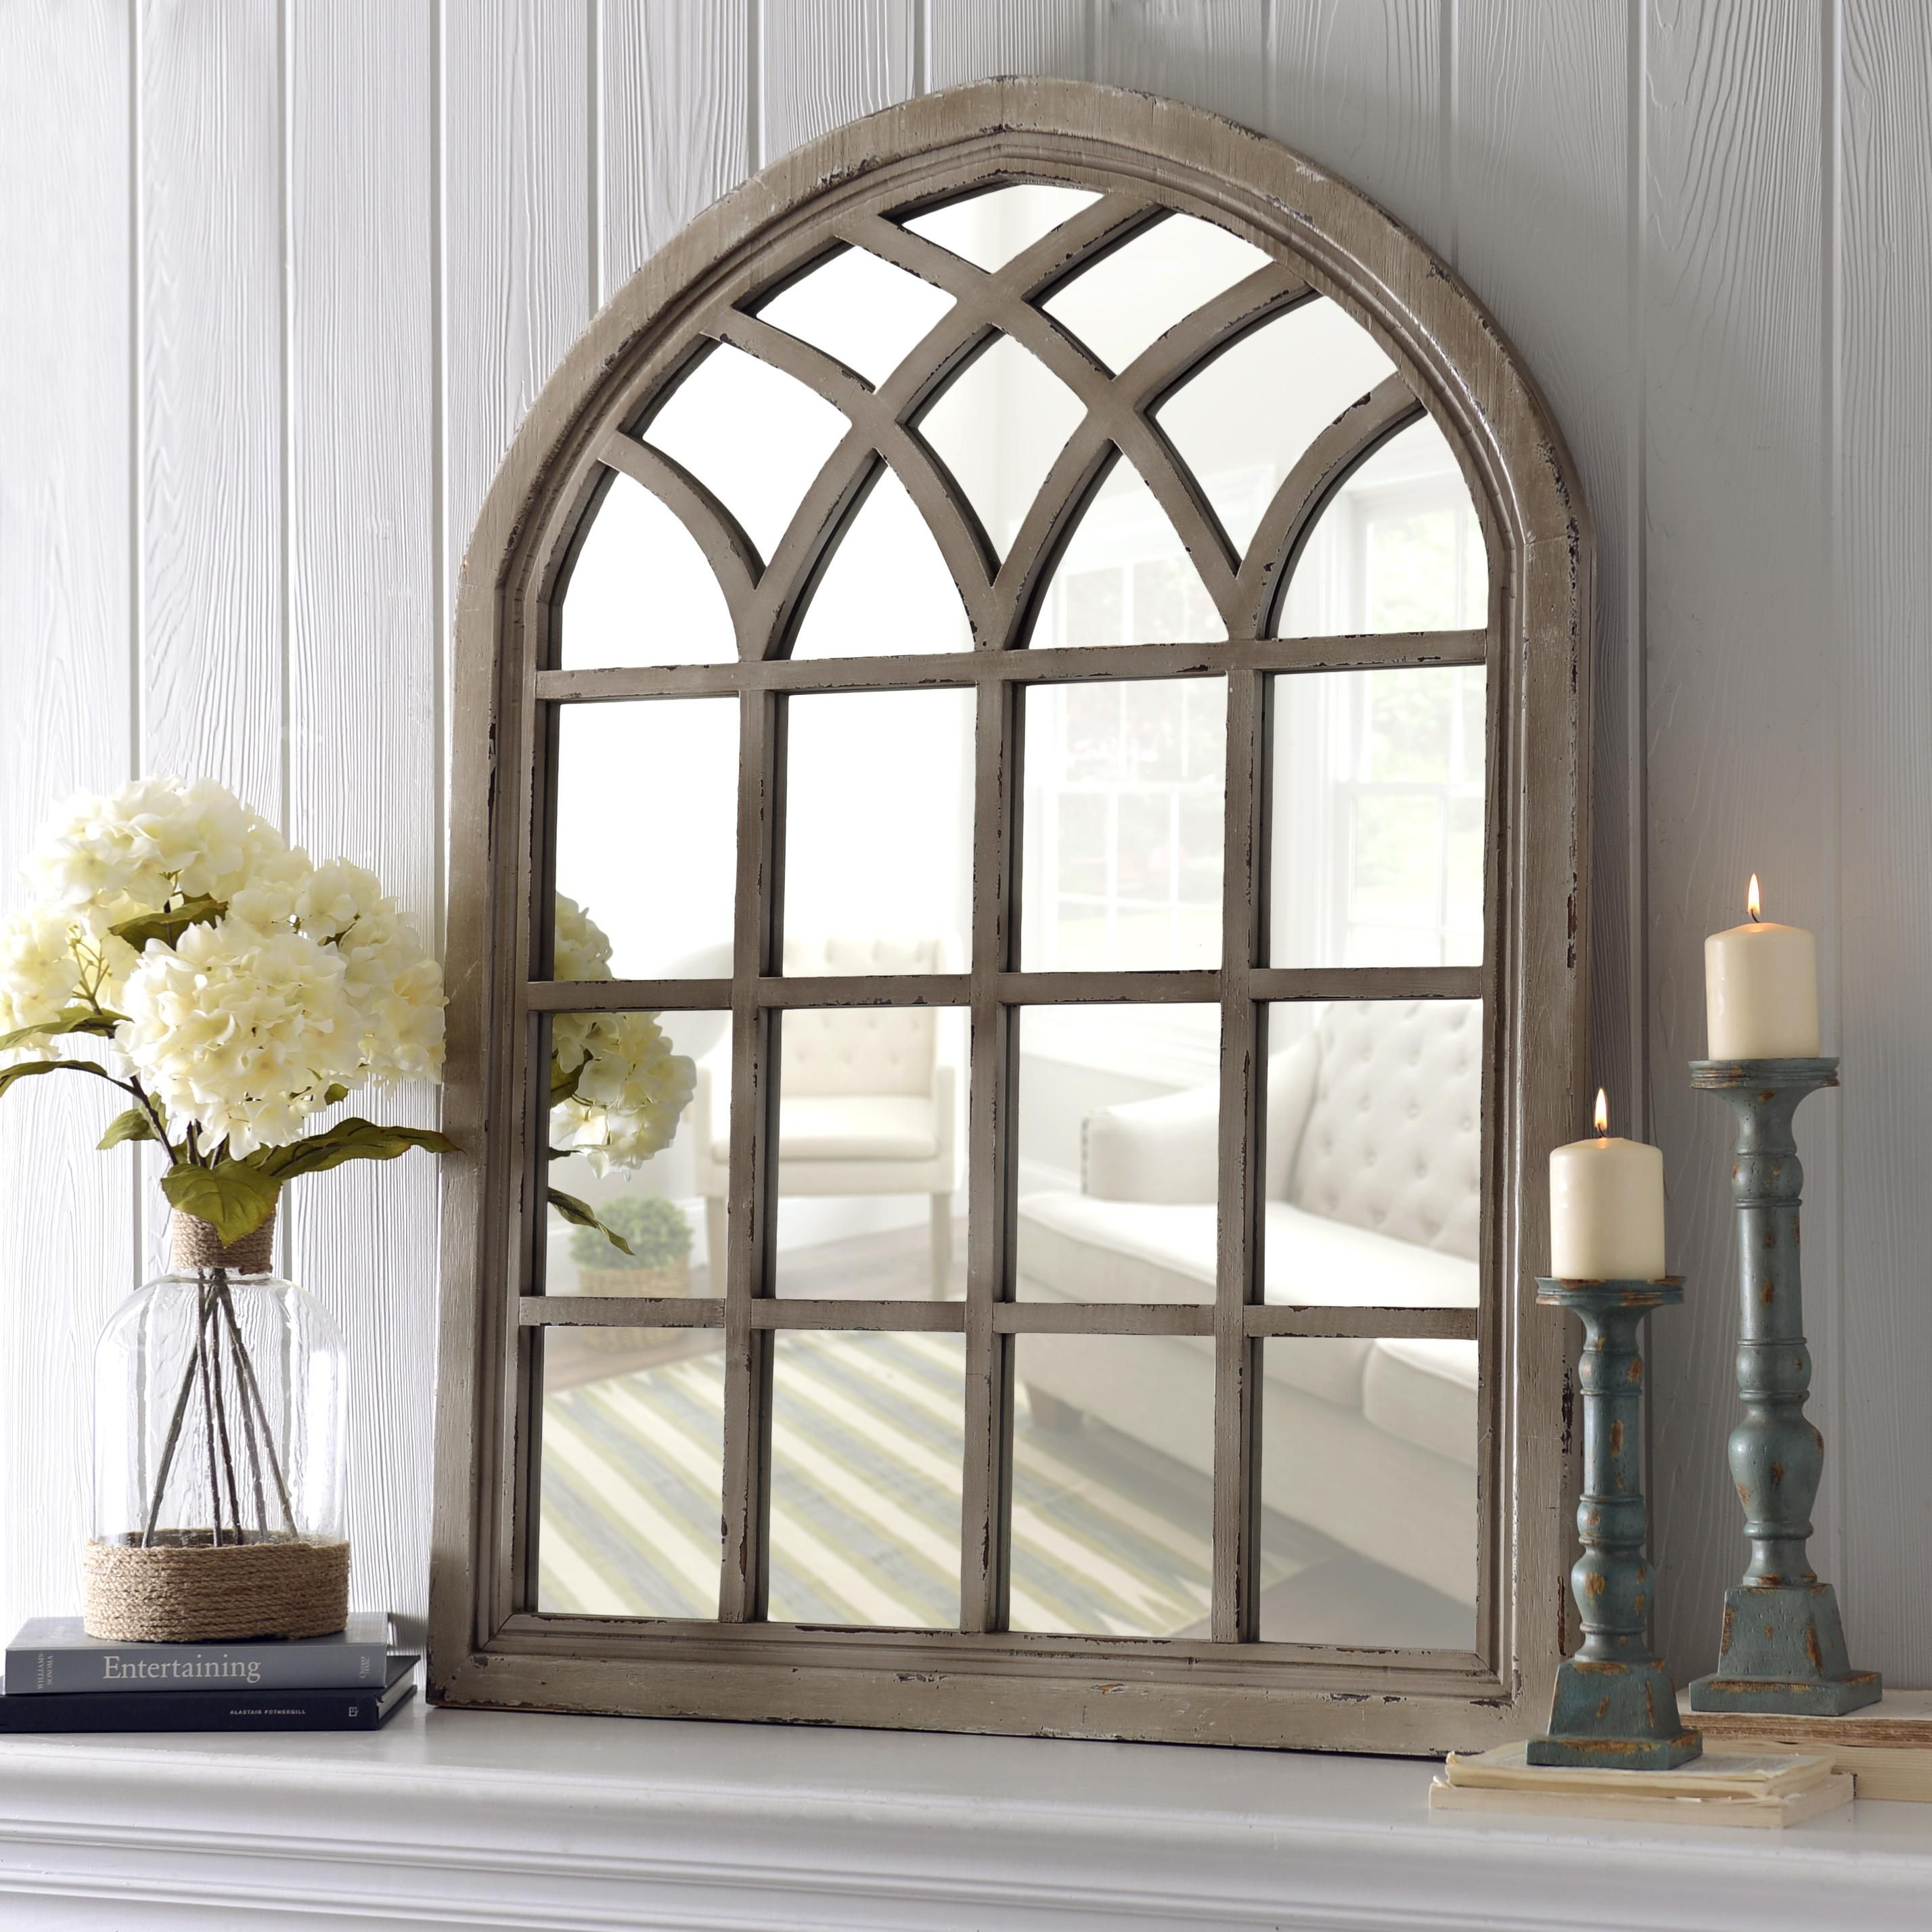 Distressed cream sadie arch mirror arch mirror rustic for Arch window decoration